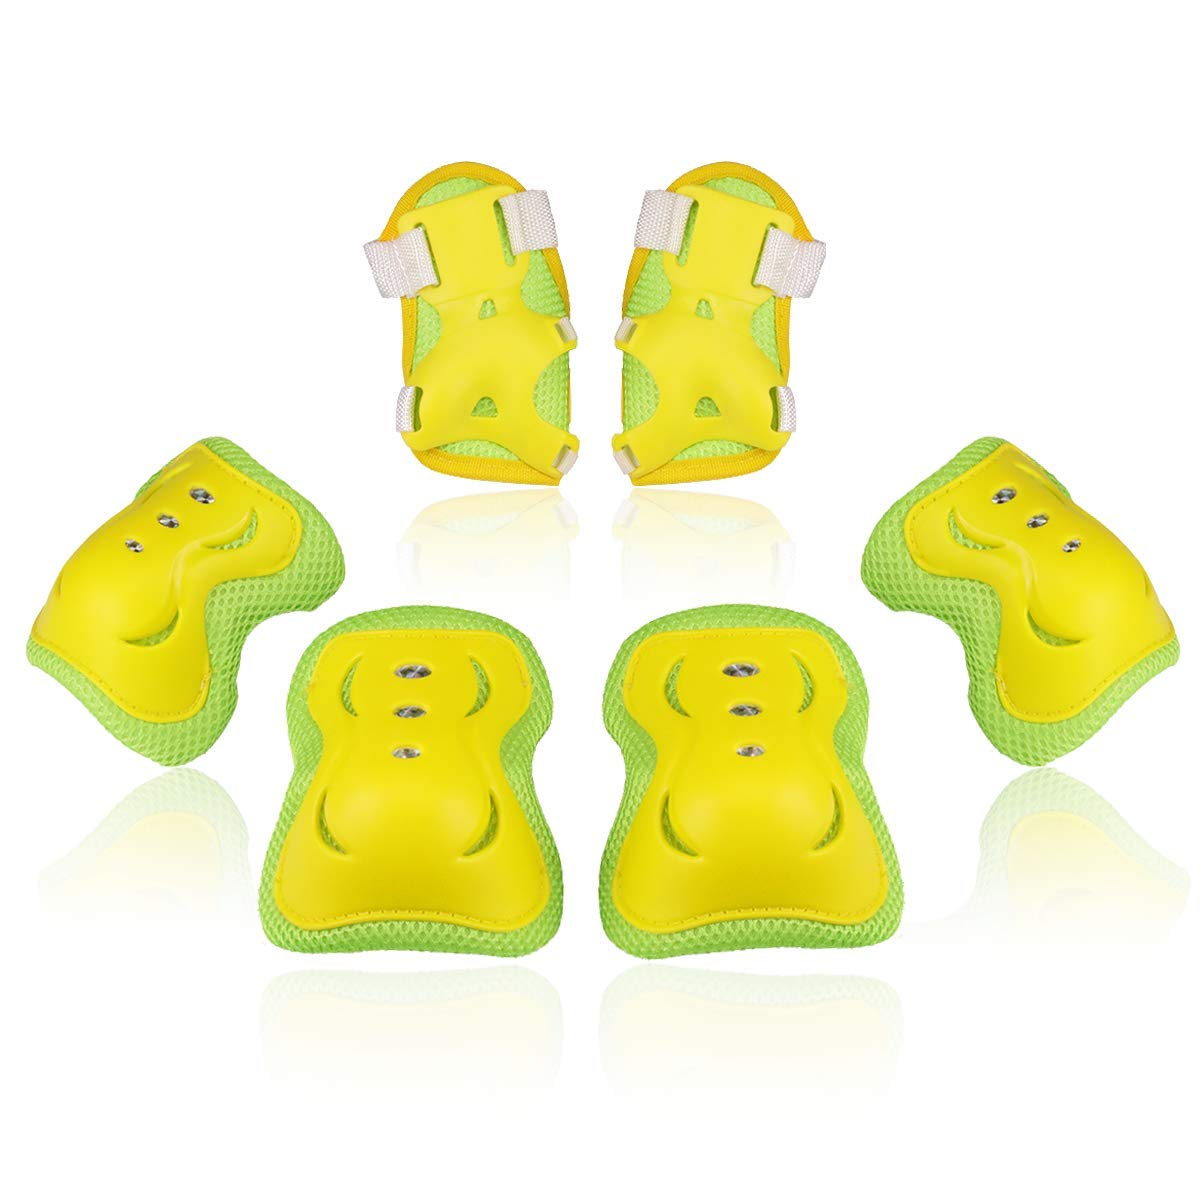 BOSONER Kids/Youth Knee Pad Elbow Pads Guards Protective Gear Set for Rollerblade Roller Skates Cycling BMX Bike Skateboard Inline Skatings Scooter Riding Sports (Yellow, Medium(9-15 Years)) by BOSONER